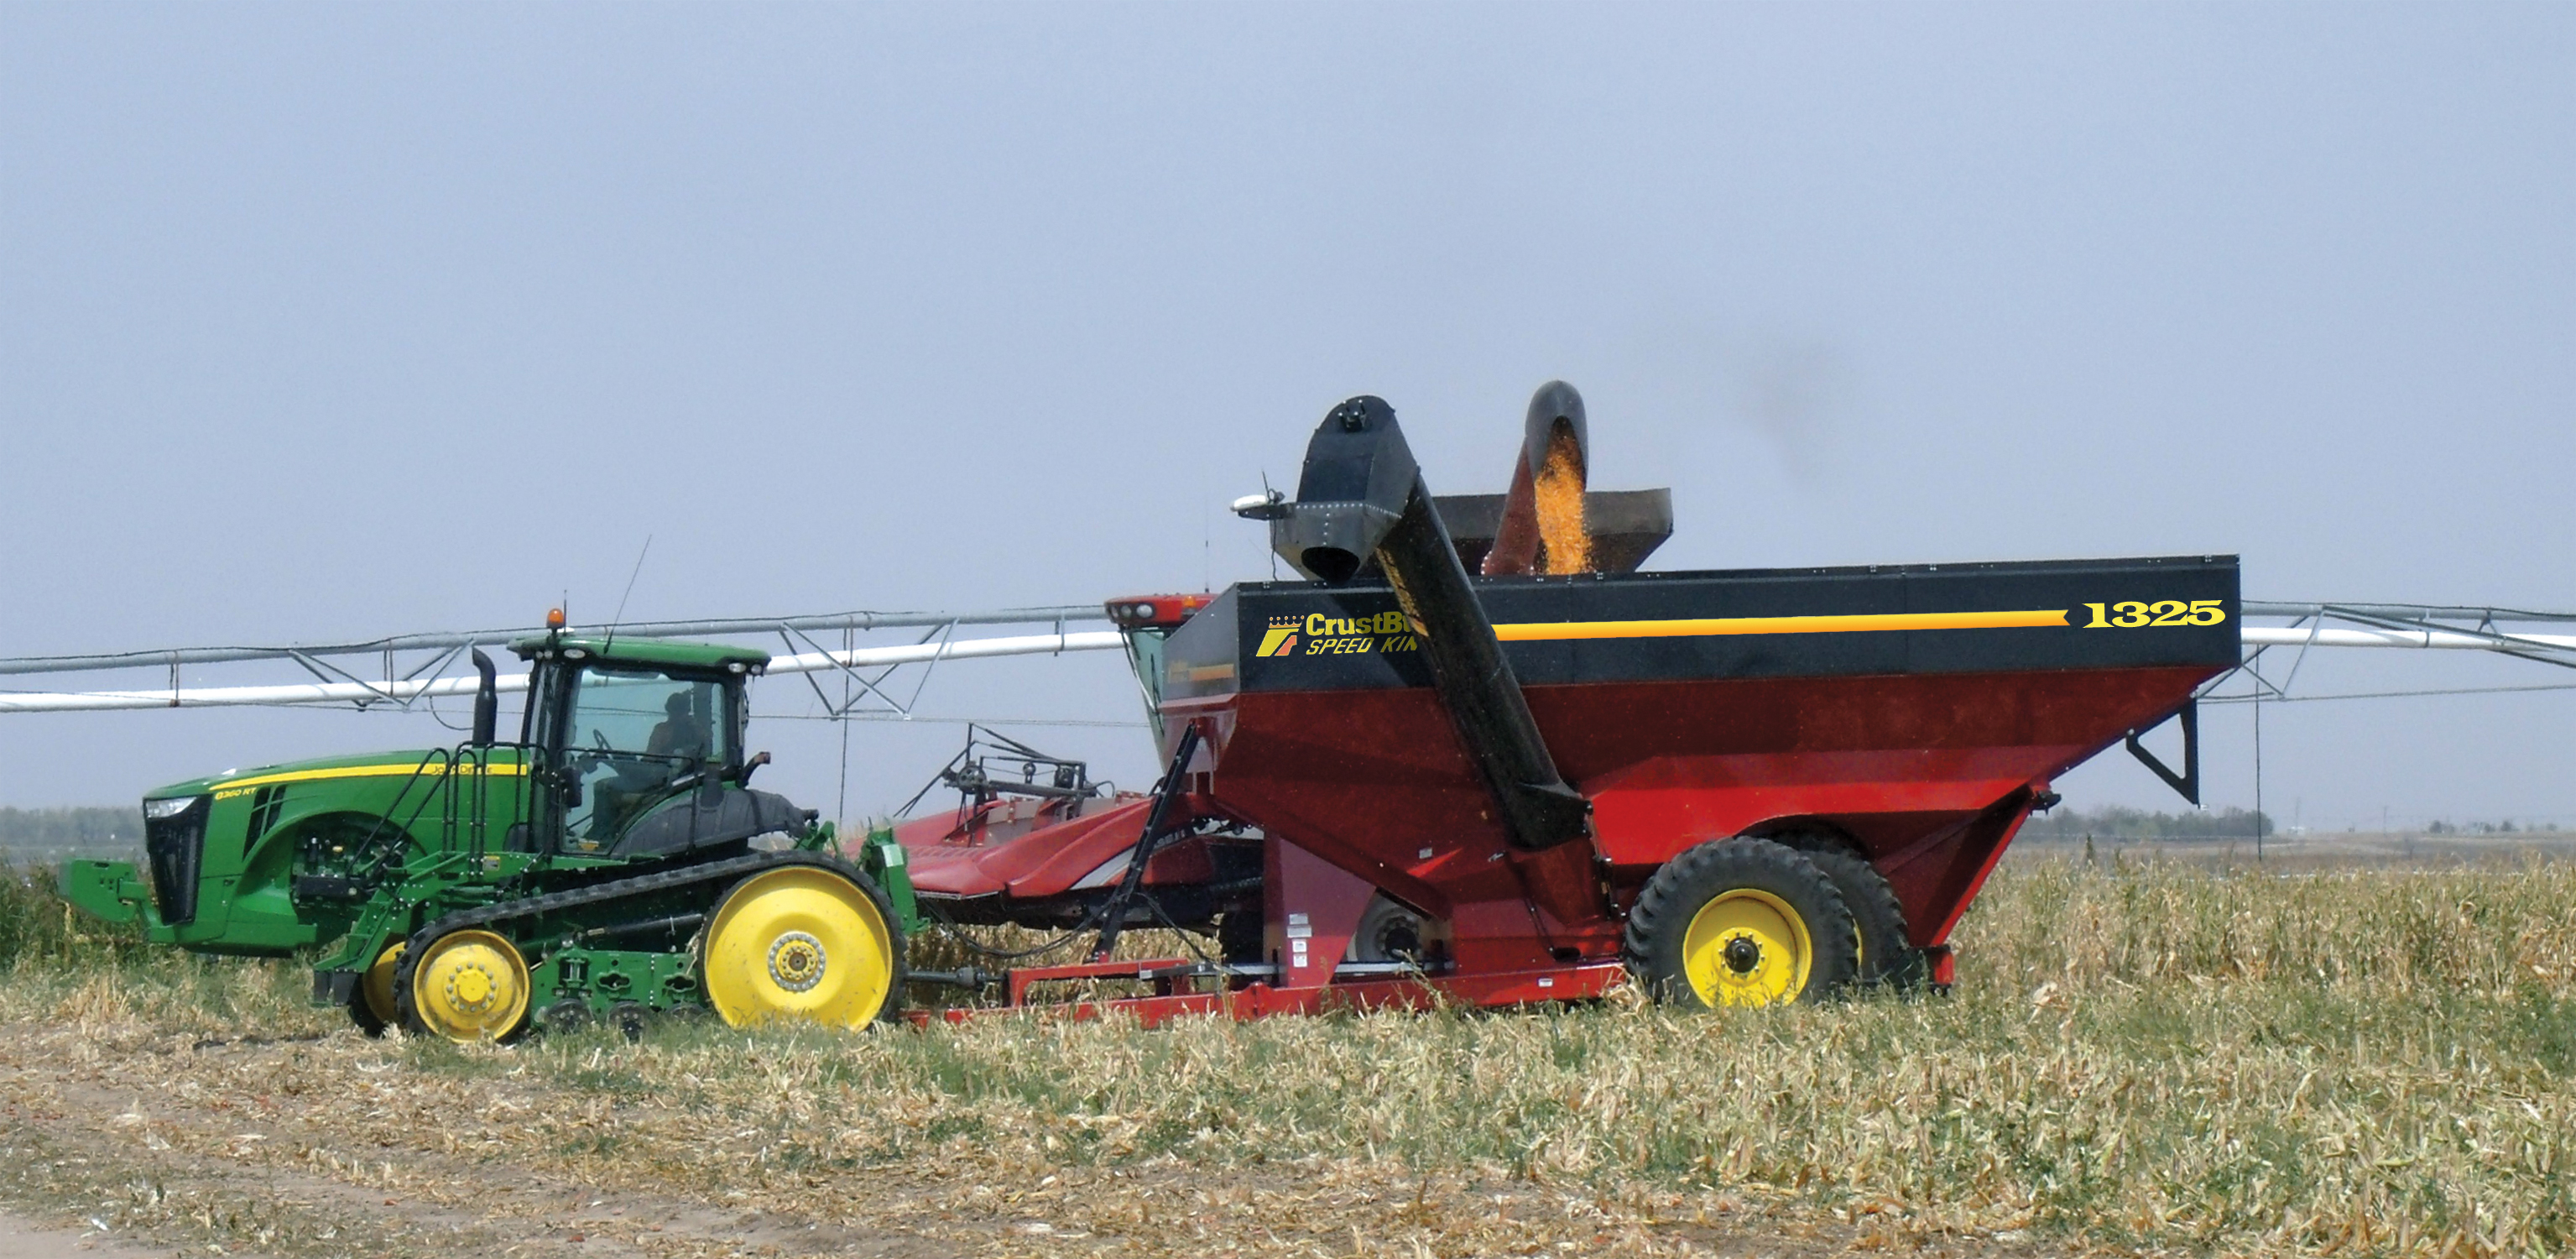 1325 Bushel Grain Cart by Crustbuster/Speed King Inc.